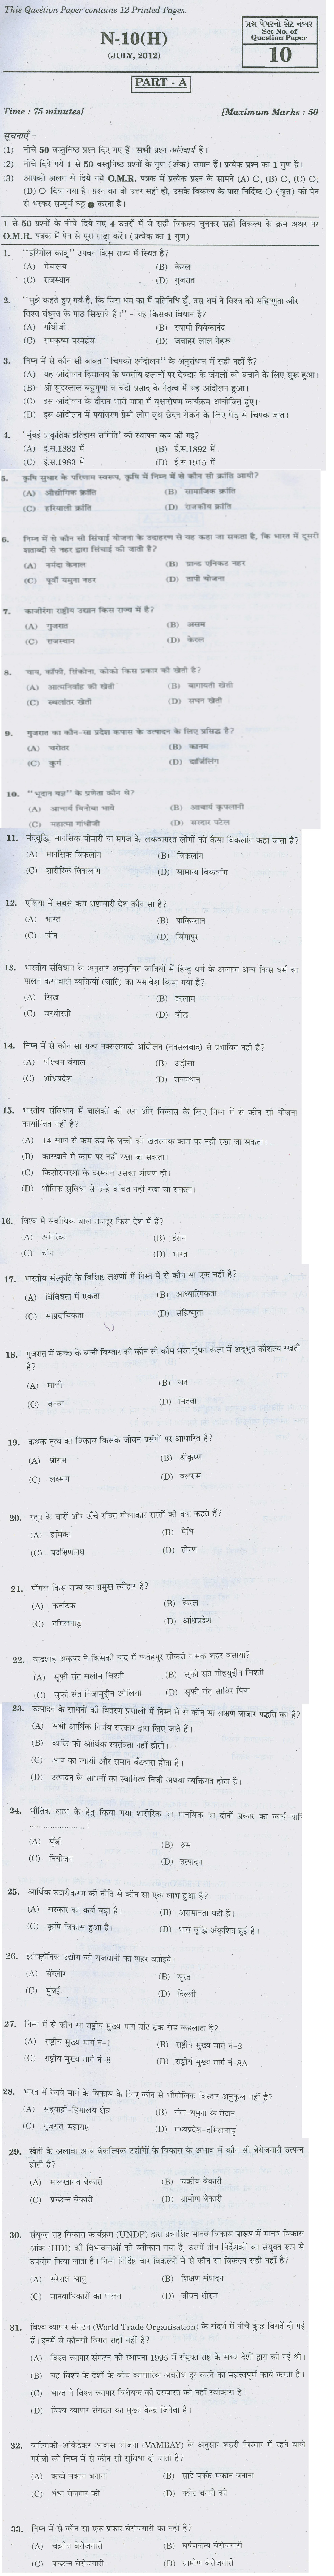 Gujarat Board Class X Question Papers (Gujarati Medium) 2012 - Social Studies